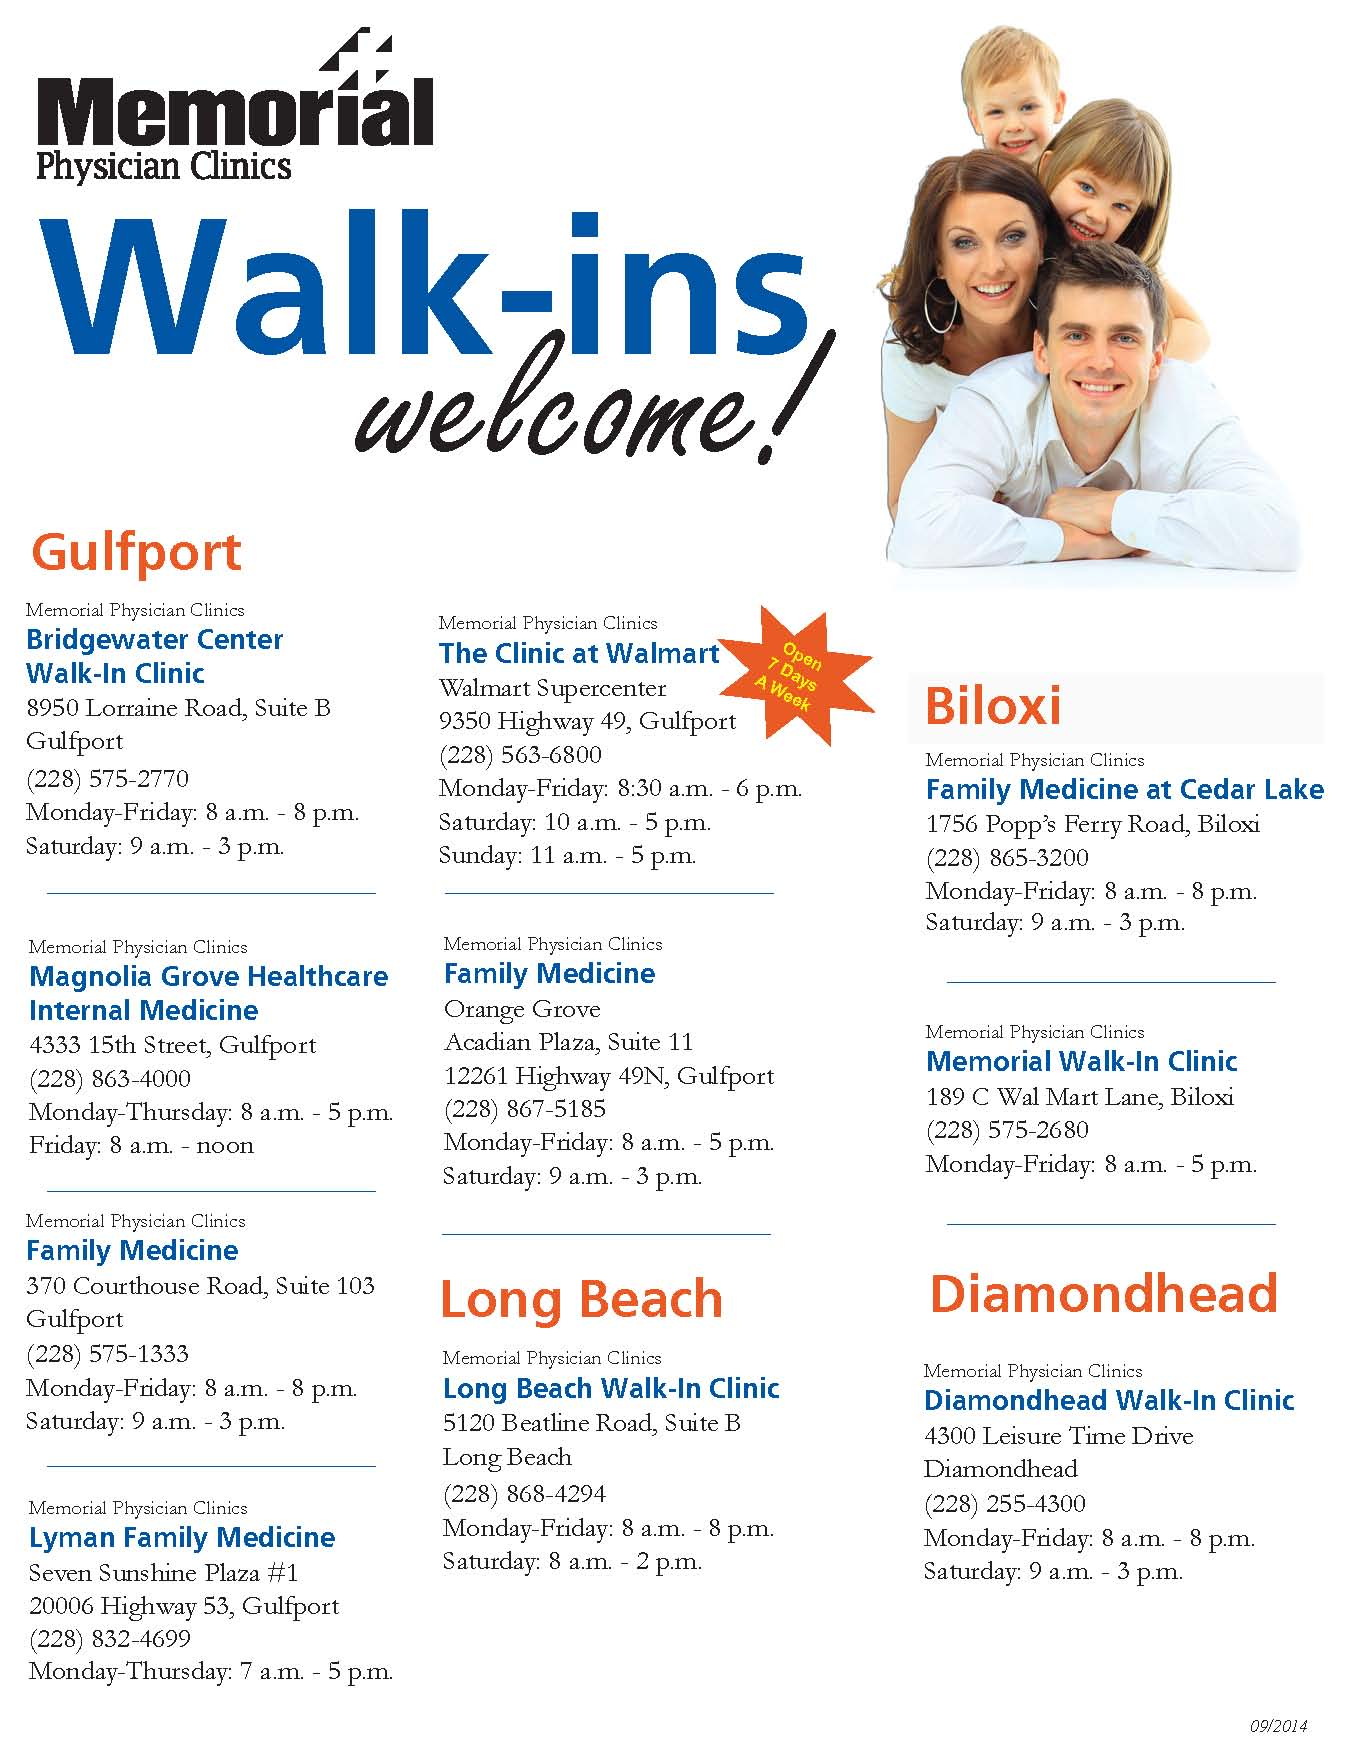 Walk in clinic near me with x ray / Vsl coin 2018 login